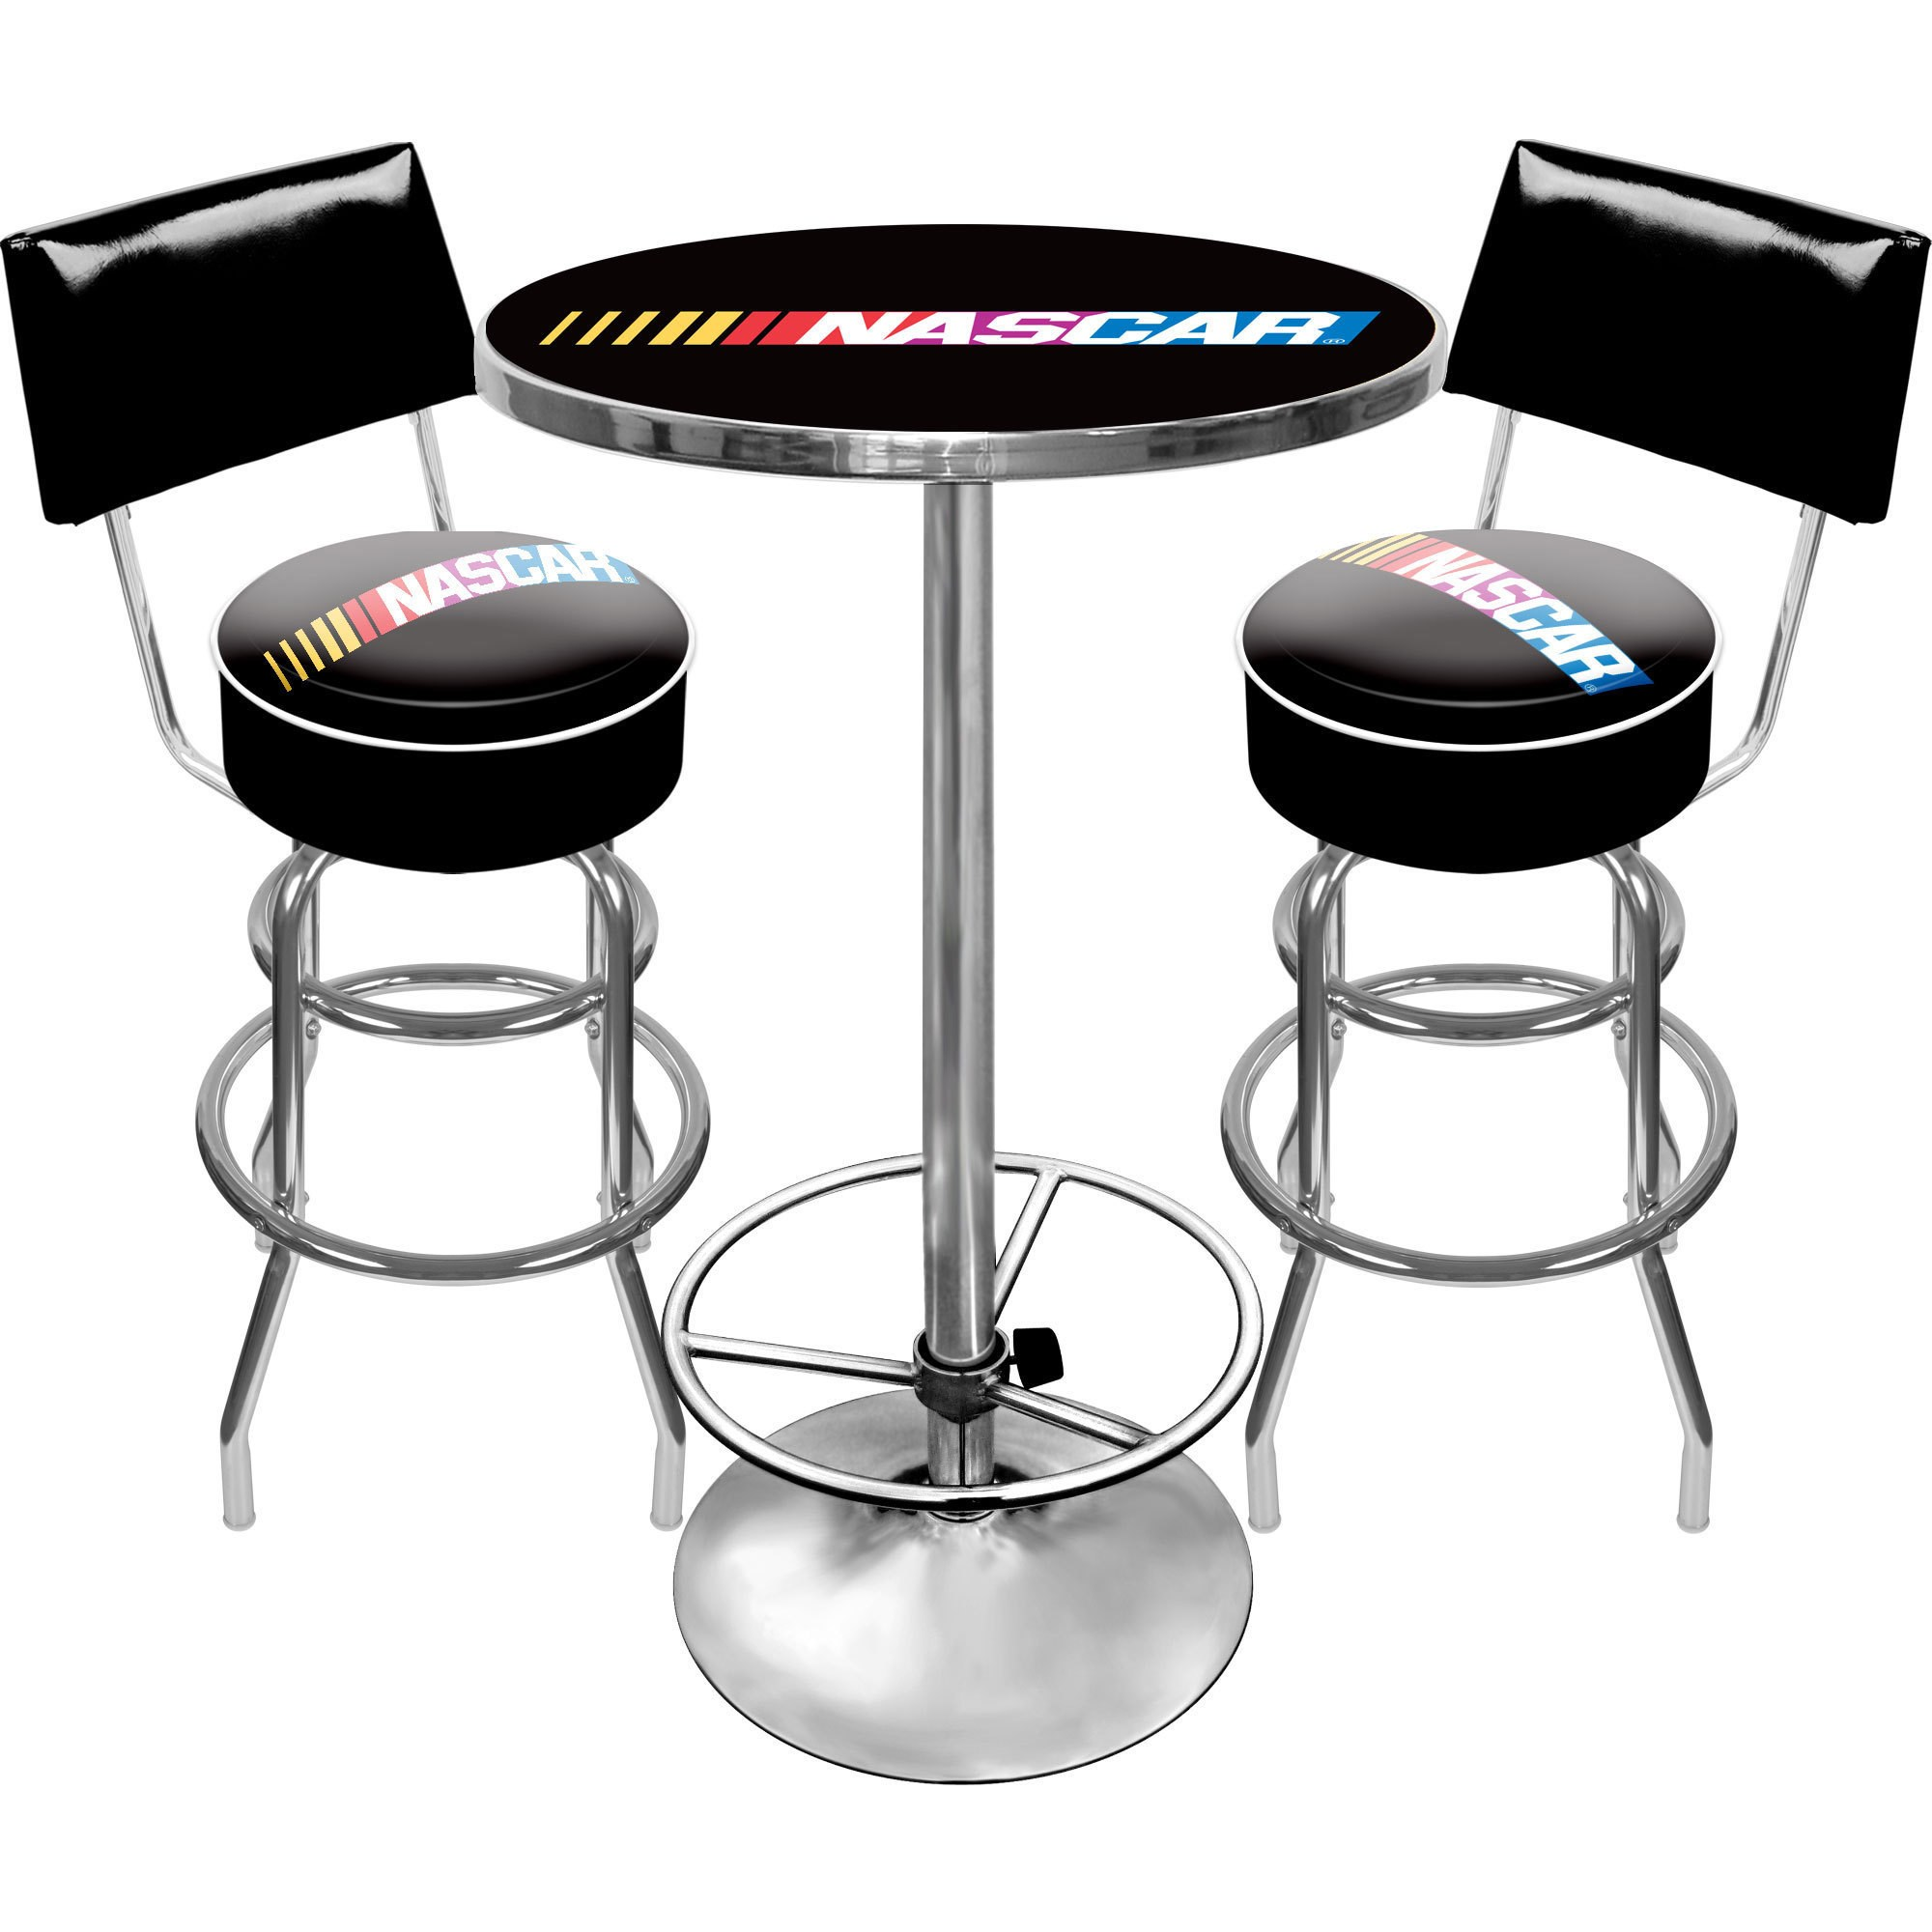 Nascar gameroom combo 2 bar stools and table home game room man cave dining new